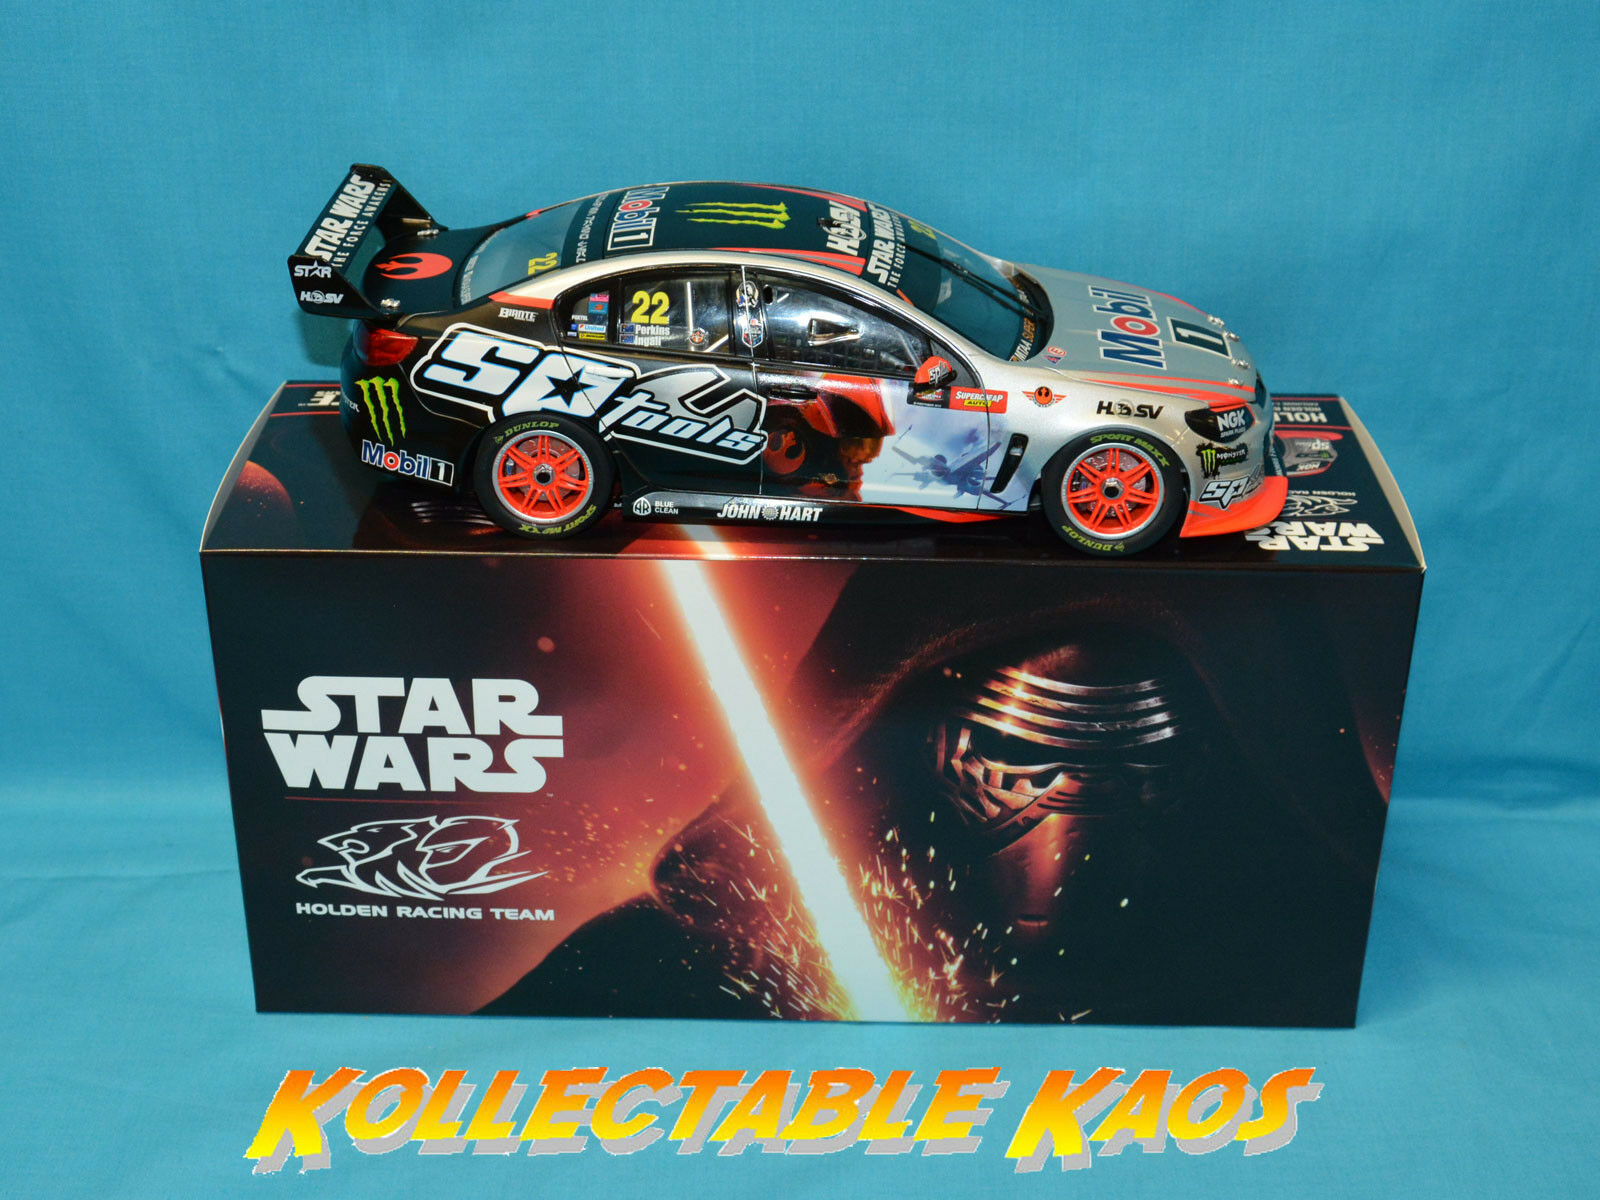 1:18 Biante - 2015 Bathurst - - - HRT Commodore - Ingall/Perkins - Star Wars Livery bbb8e7